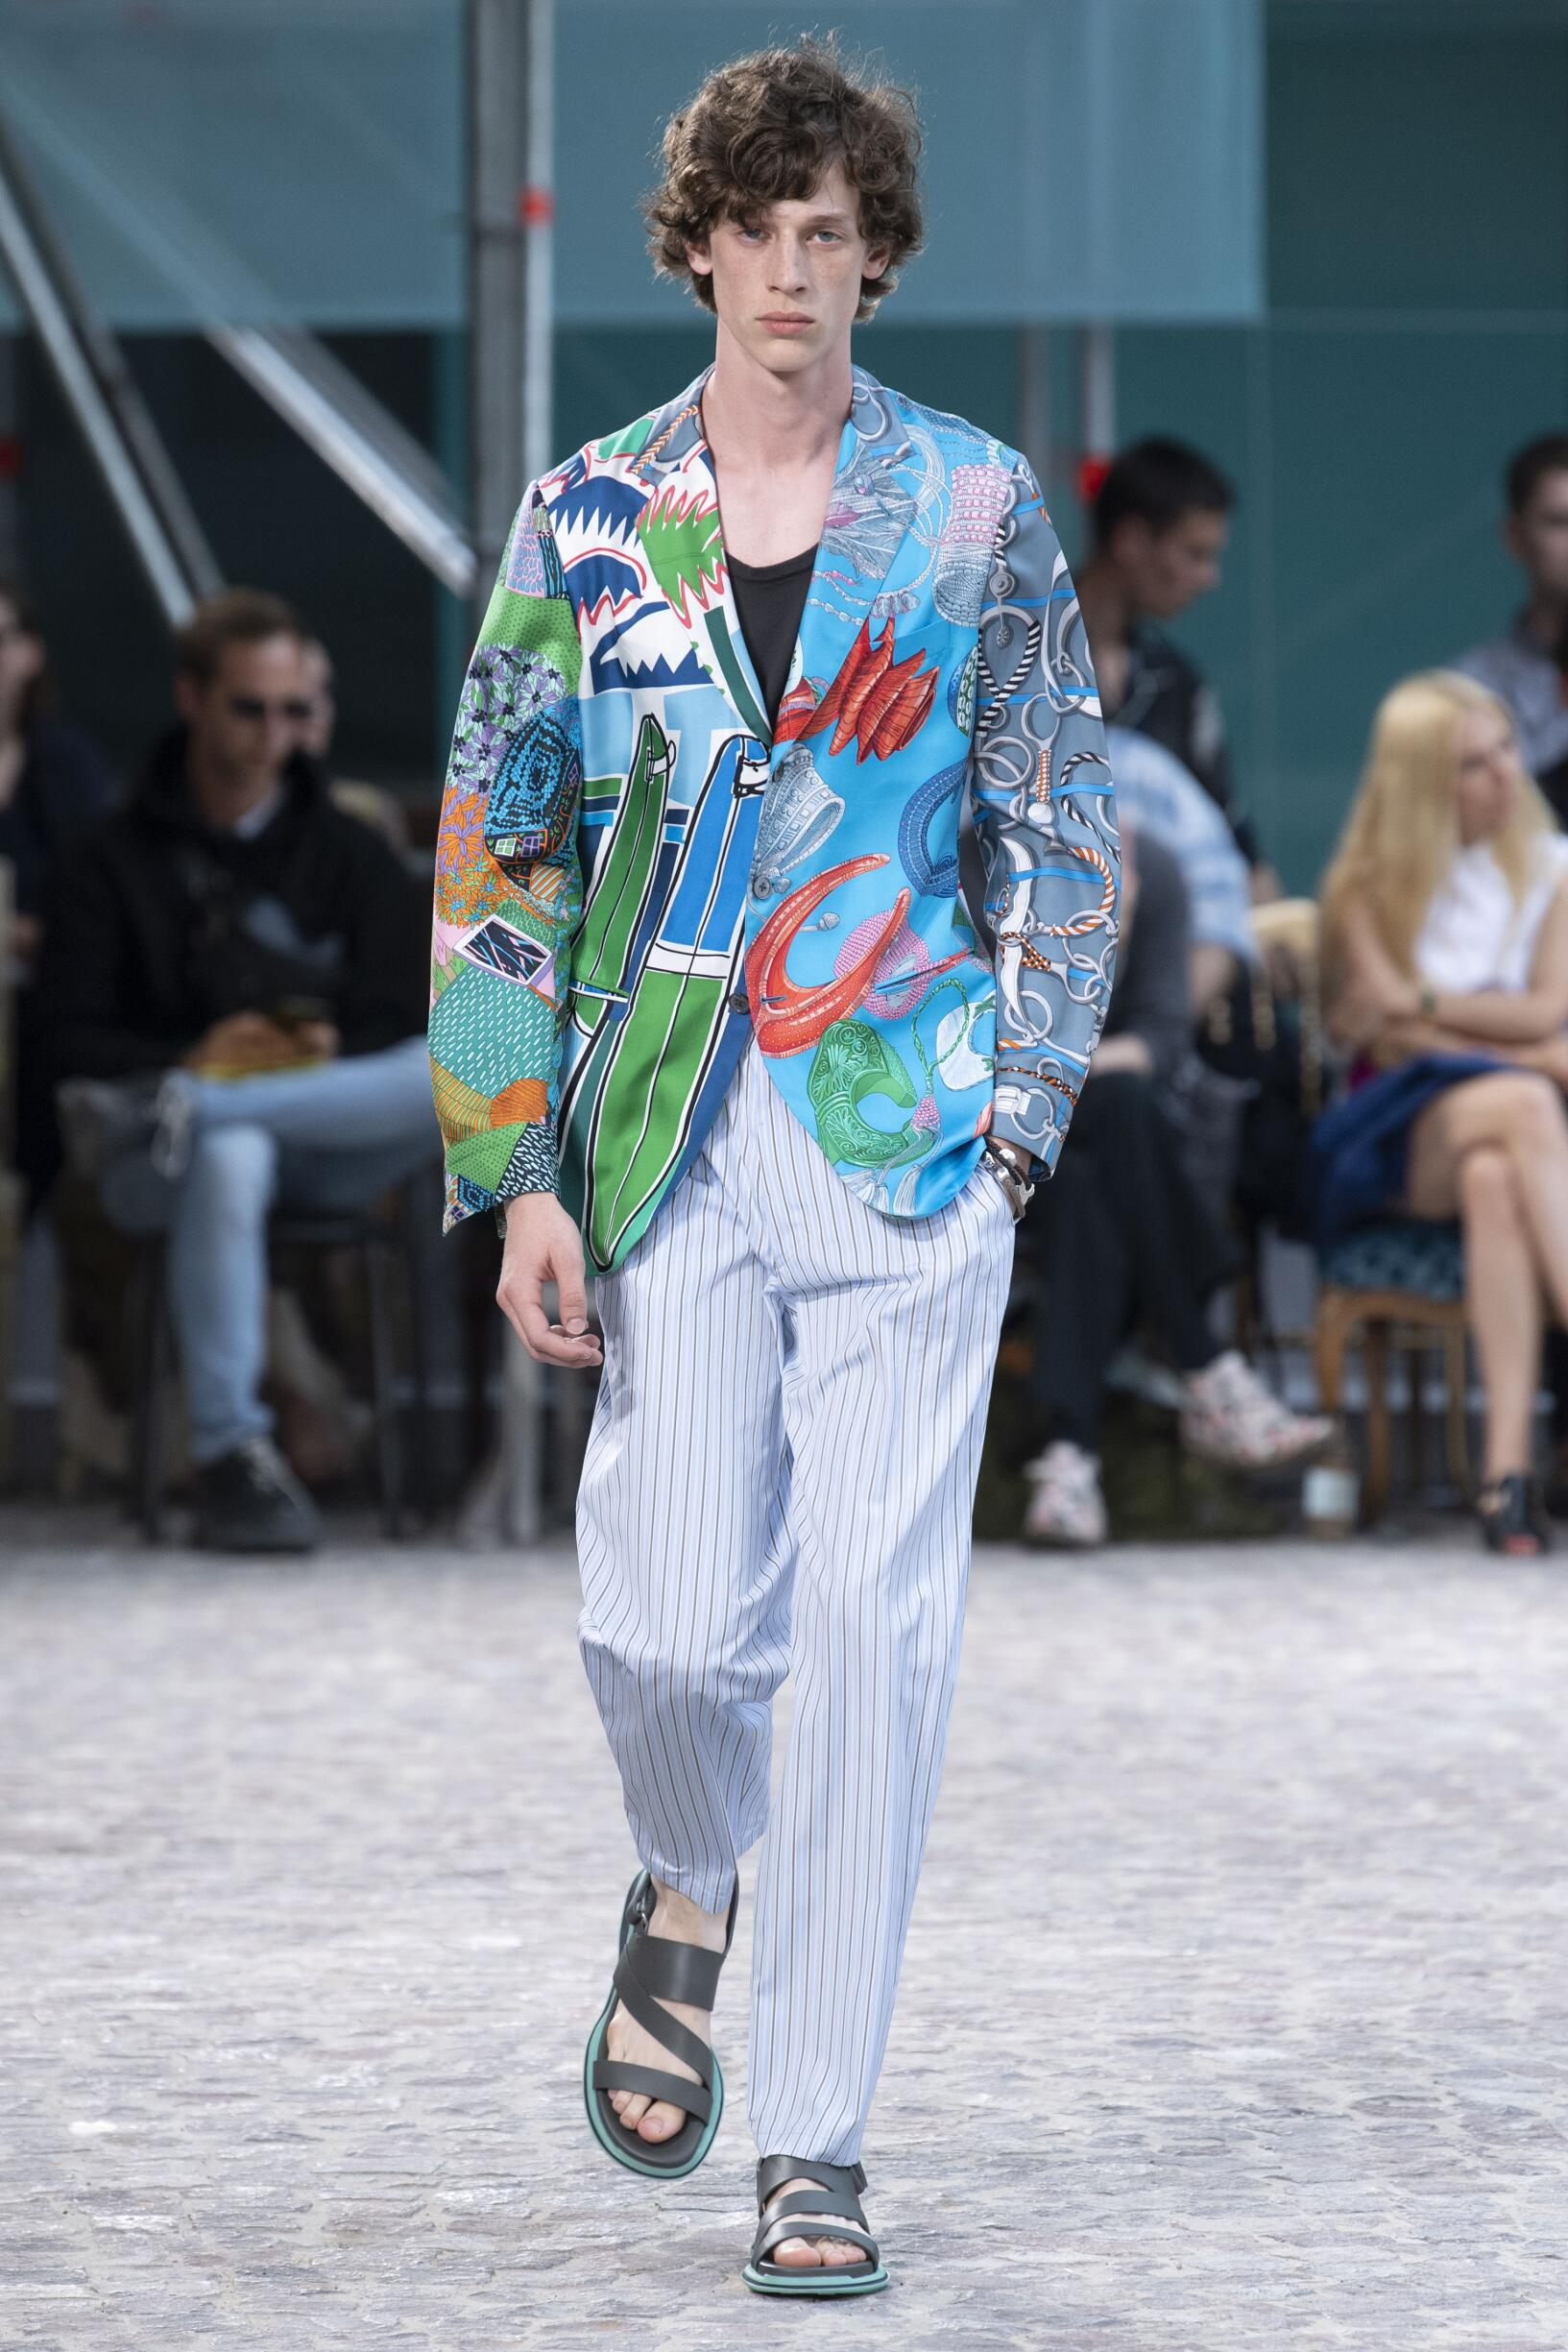 HERMÈS SPRING SUMMER 2020 MEN'S COLLECTION | The Skinny Beep